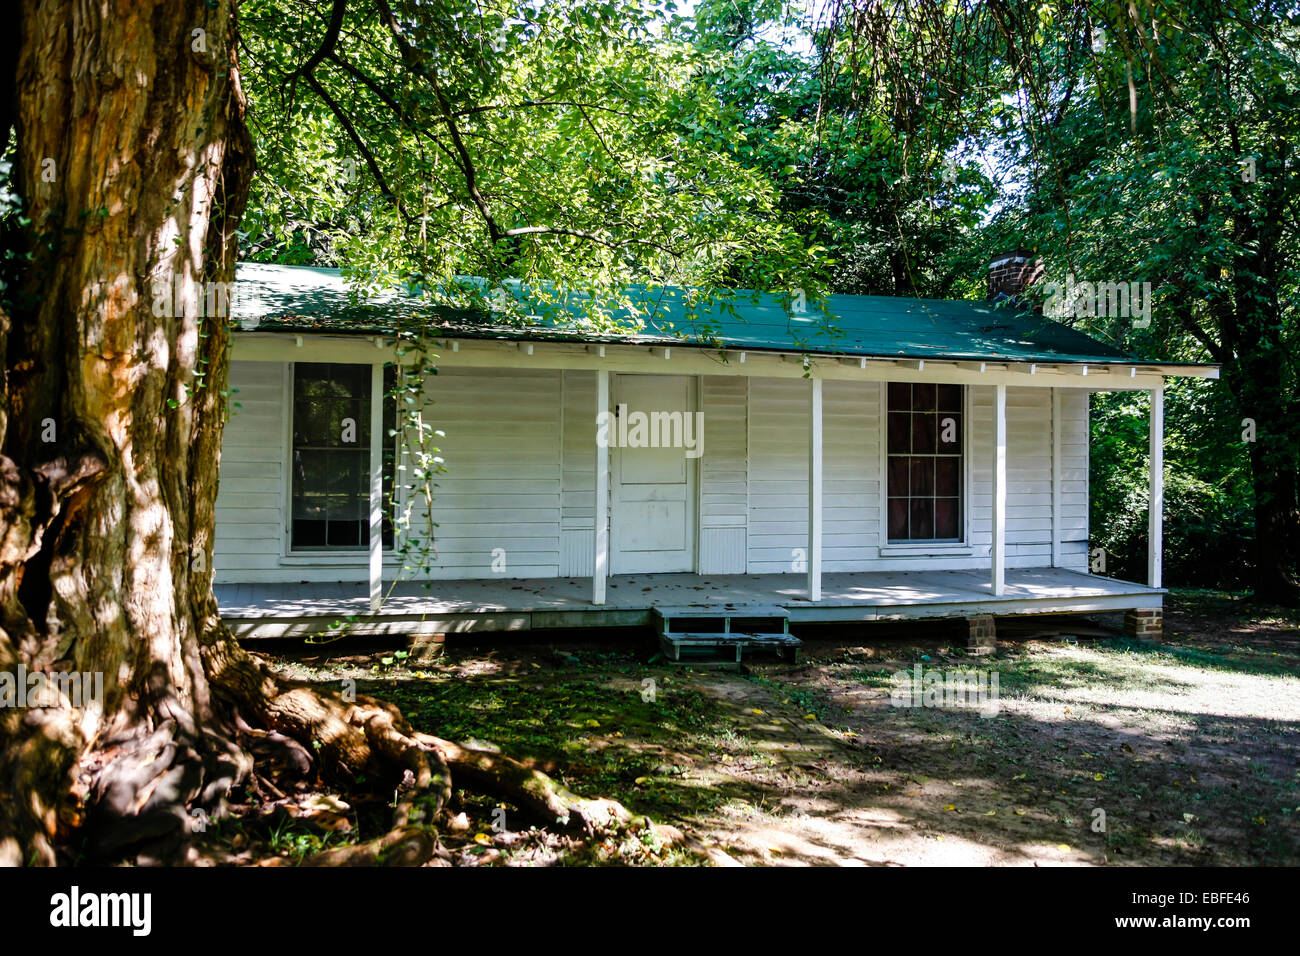 The Servants' Quarters at Rowen Oak at Oxford MS, home to Mammy Callie, William Faulkner's family caretaker. - Stock Image